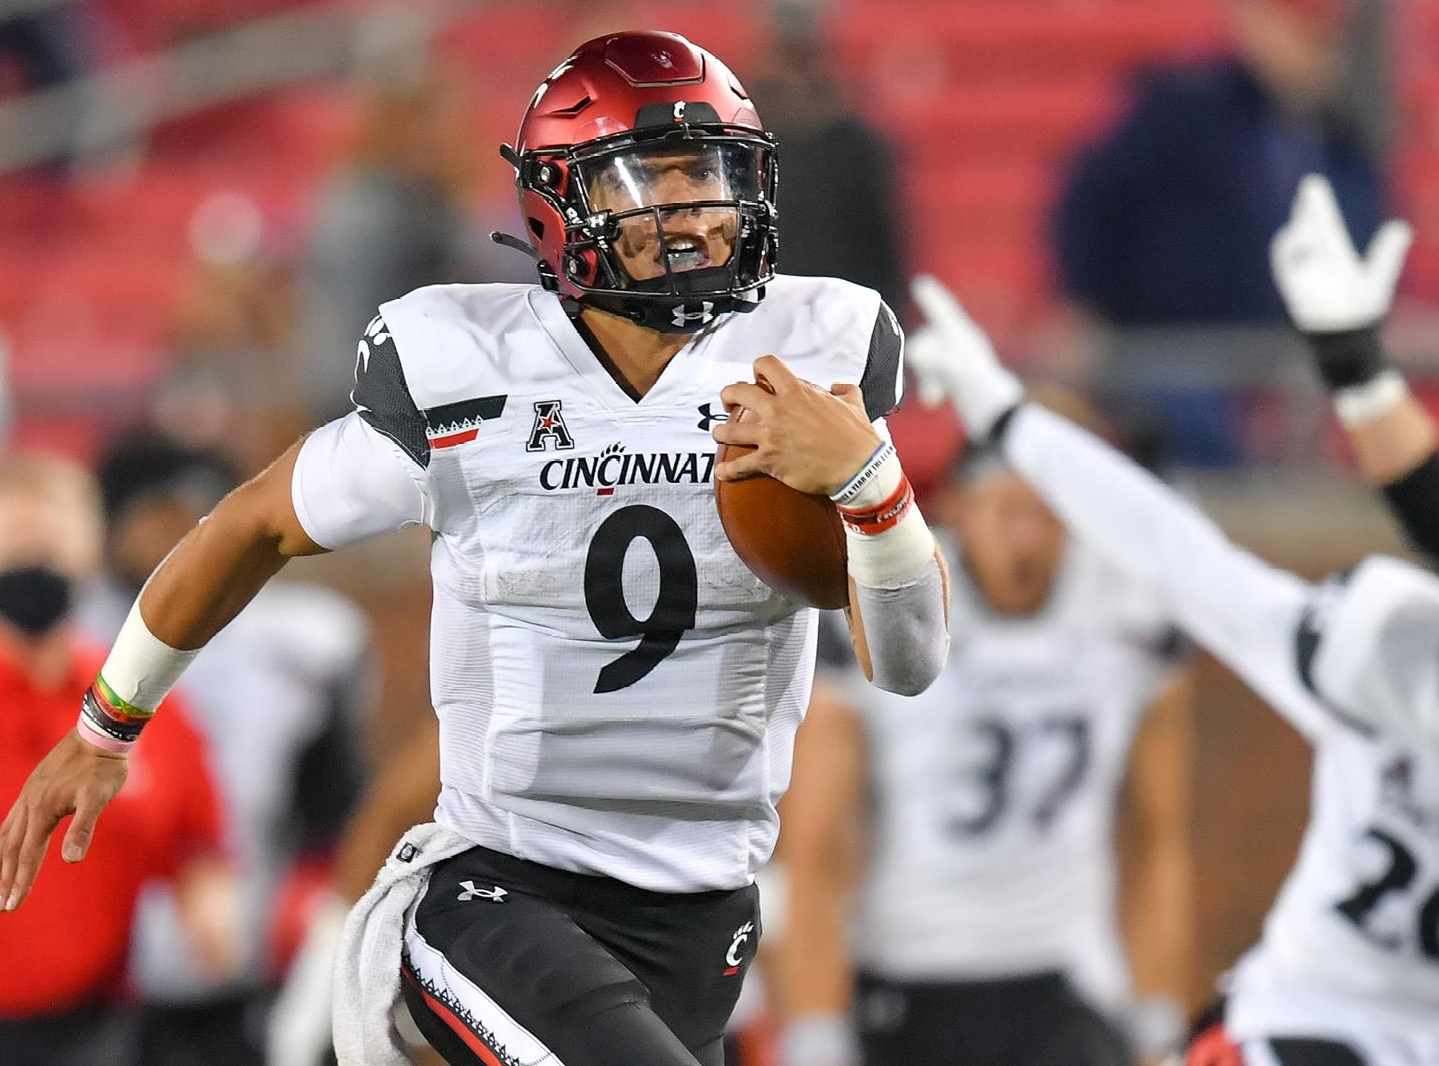 Peach Bowl Betting Preview: Cincinnati Bearcats vs. Georgia Bulldogs